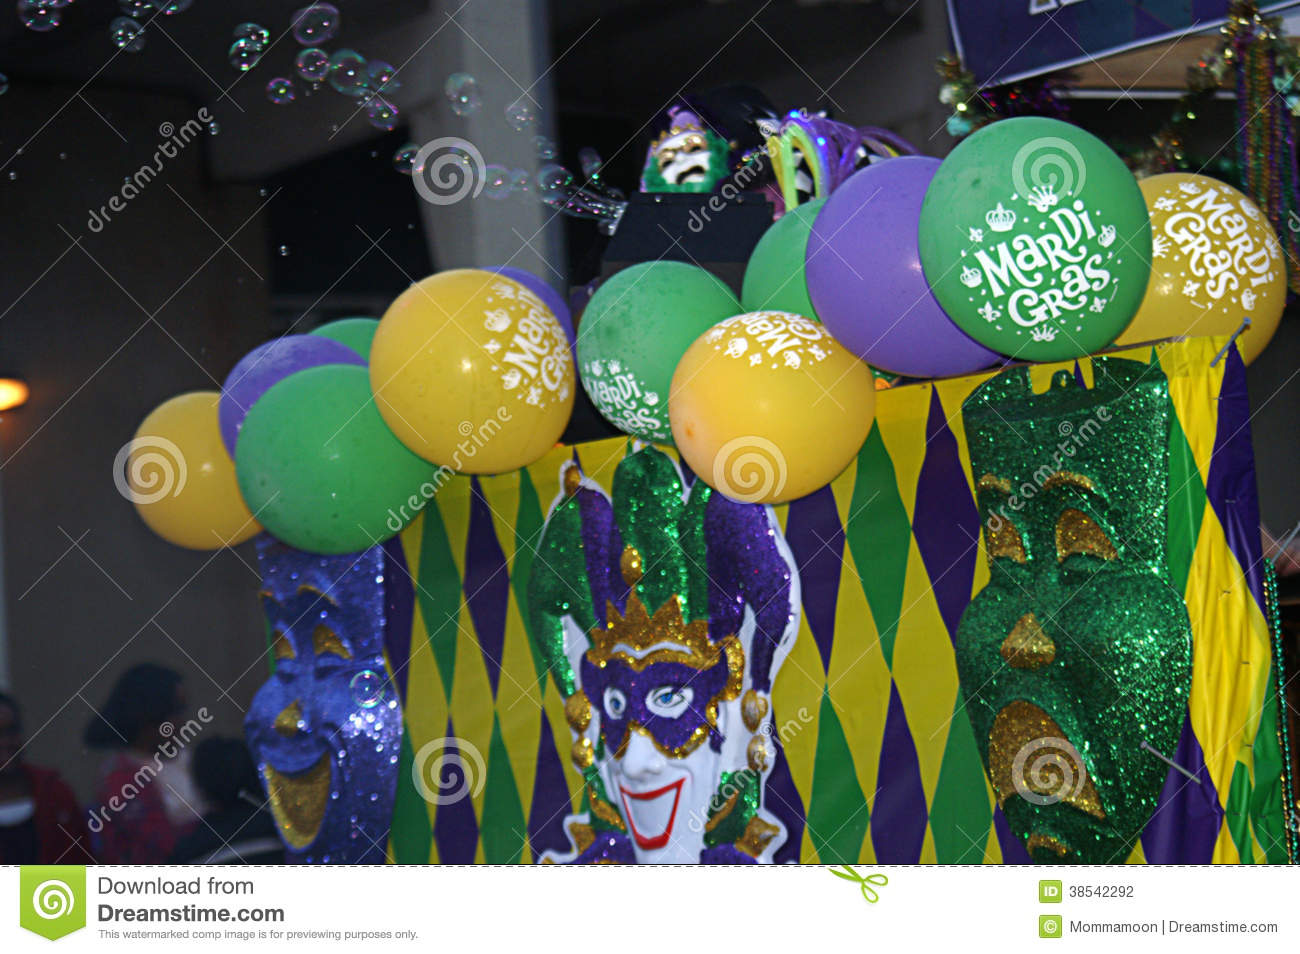 Colorful Float in Mardi Gras Parade